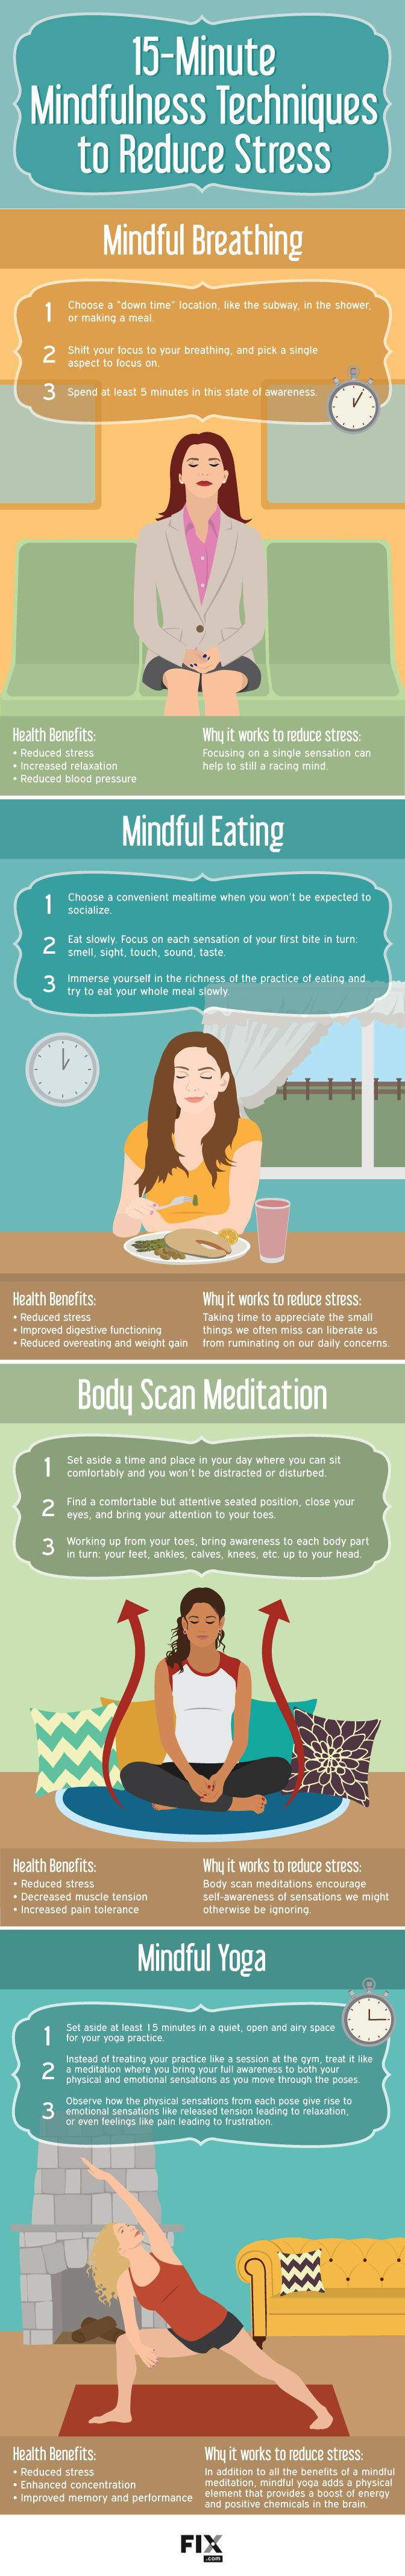 15 minute mindfulness techniques infographic #Health #infographic